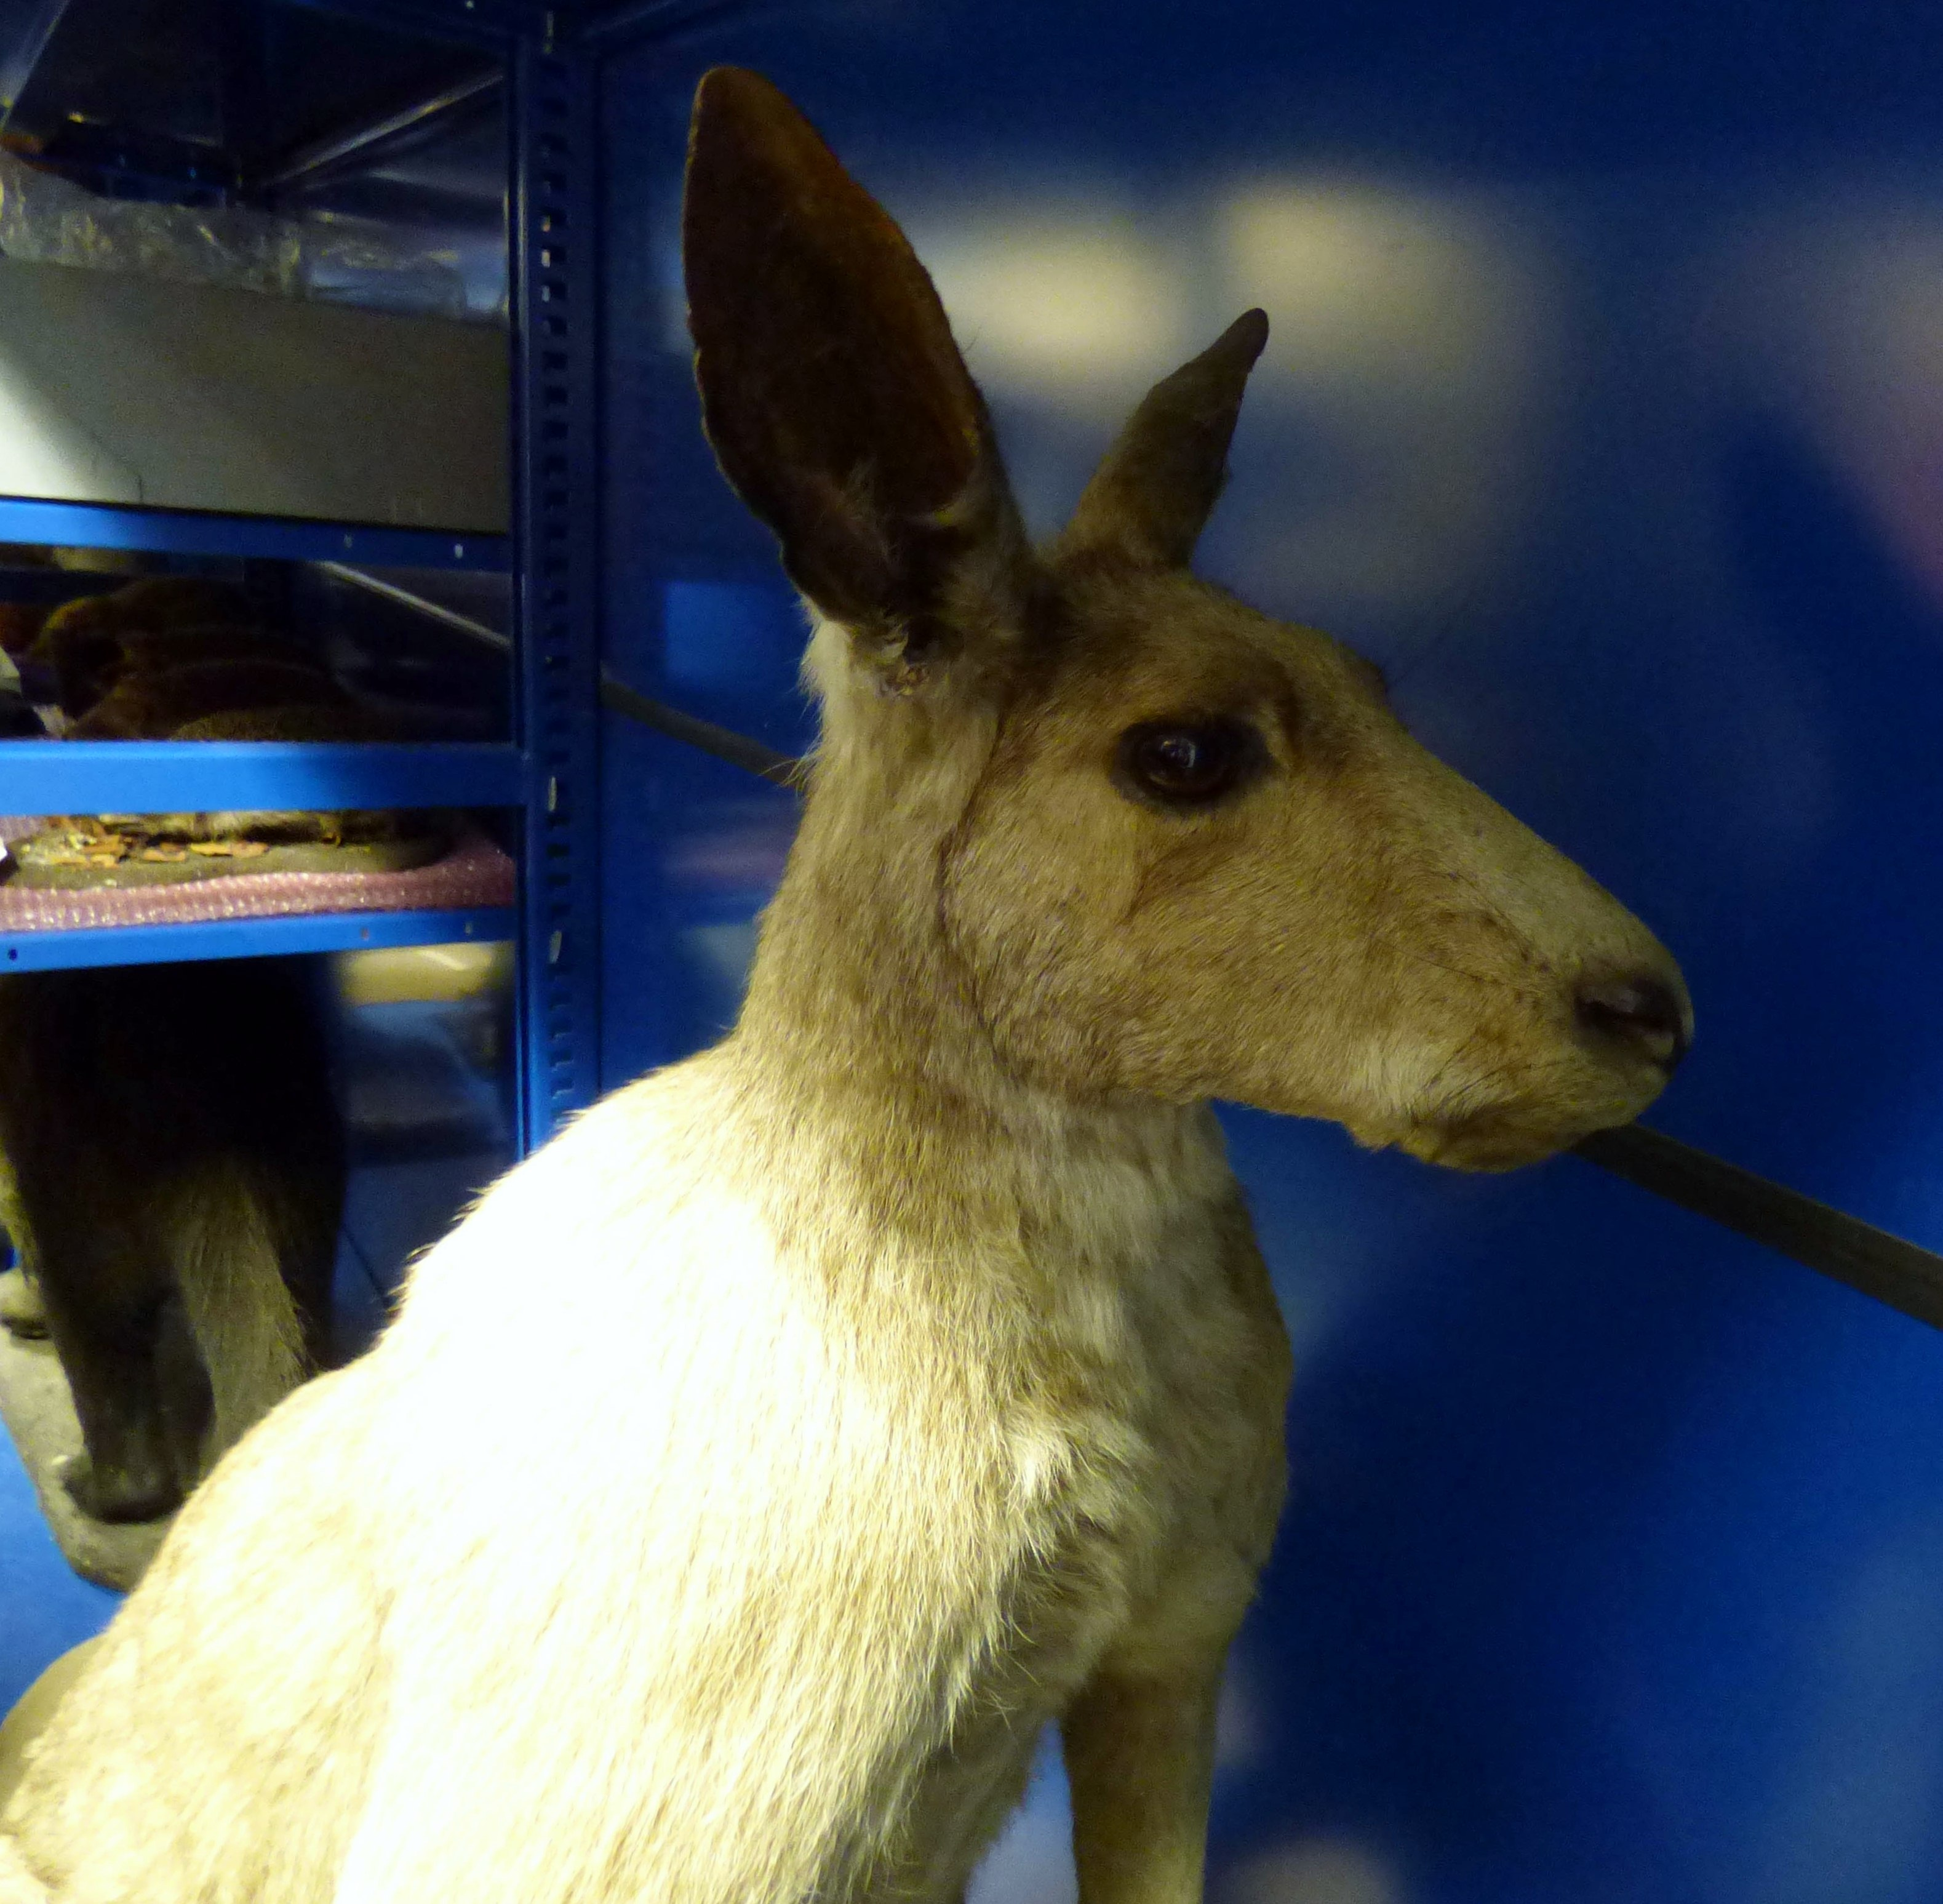 Taxidermy, MEG behind the scenes tour at Liverpool World Museum, 2018